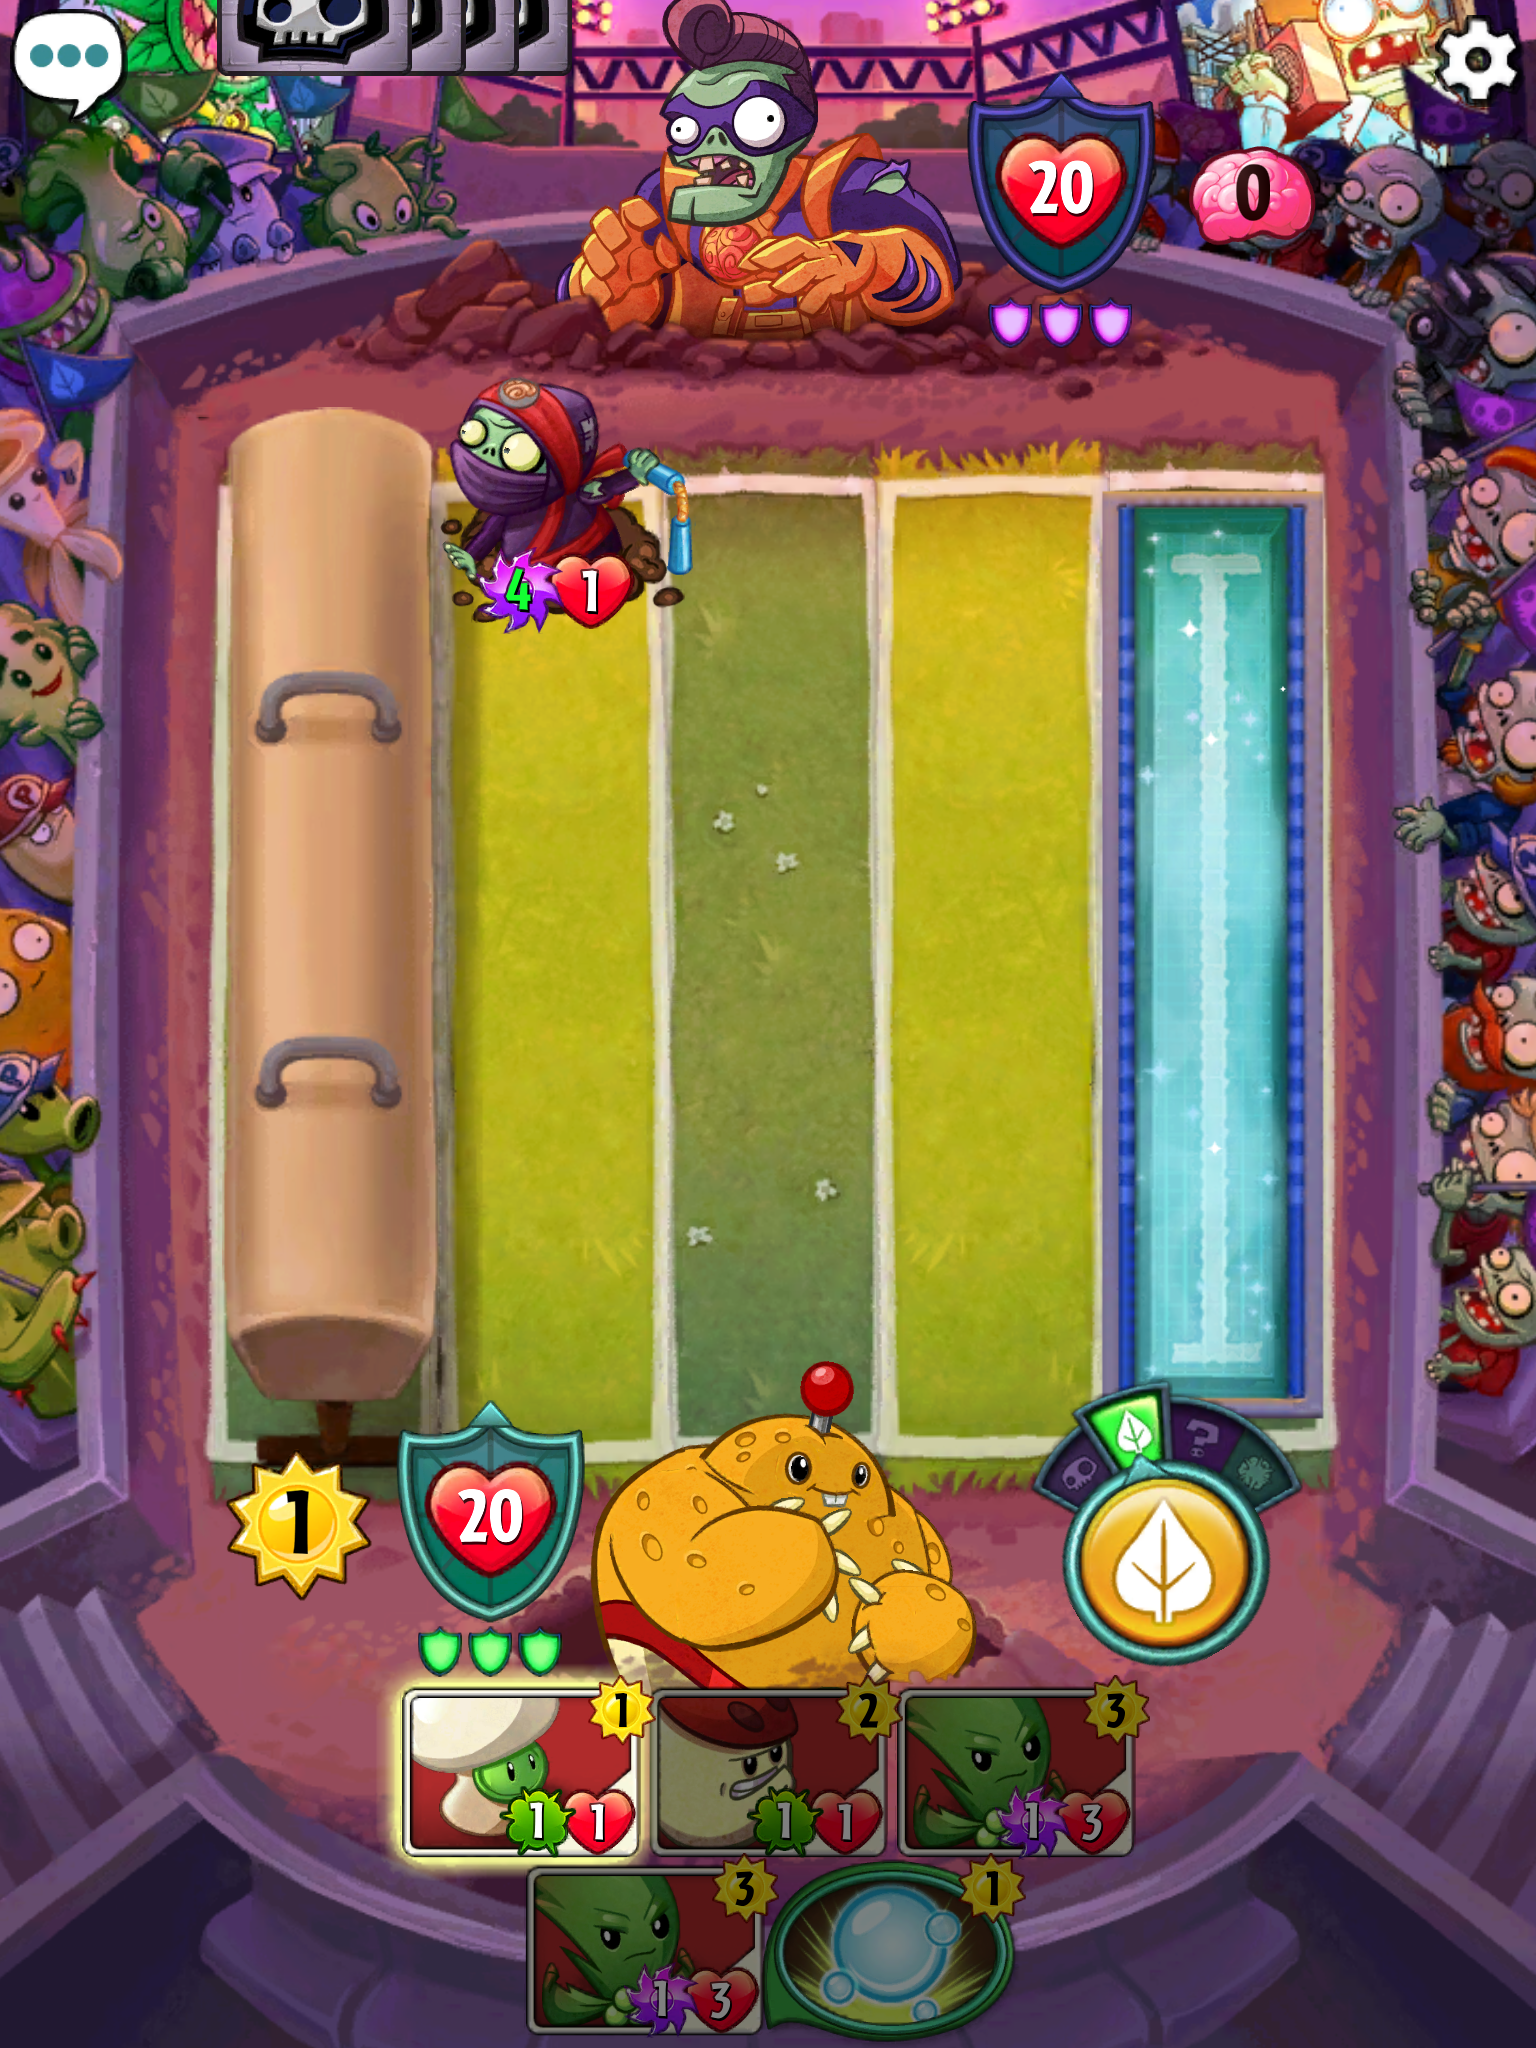 Plants vs Zombies: Heroes review - Is it as good as Clash Royale